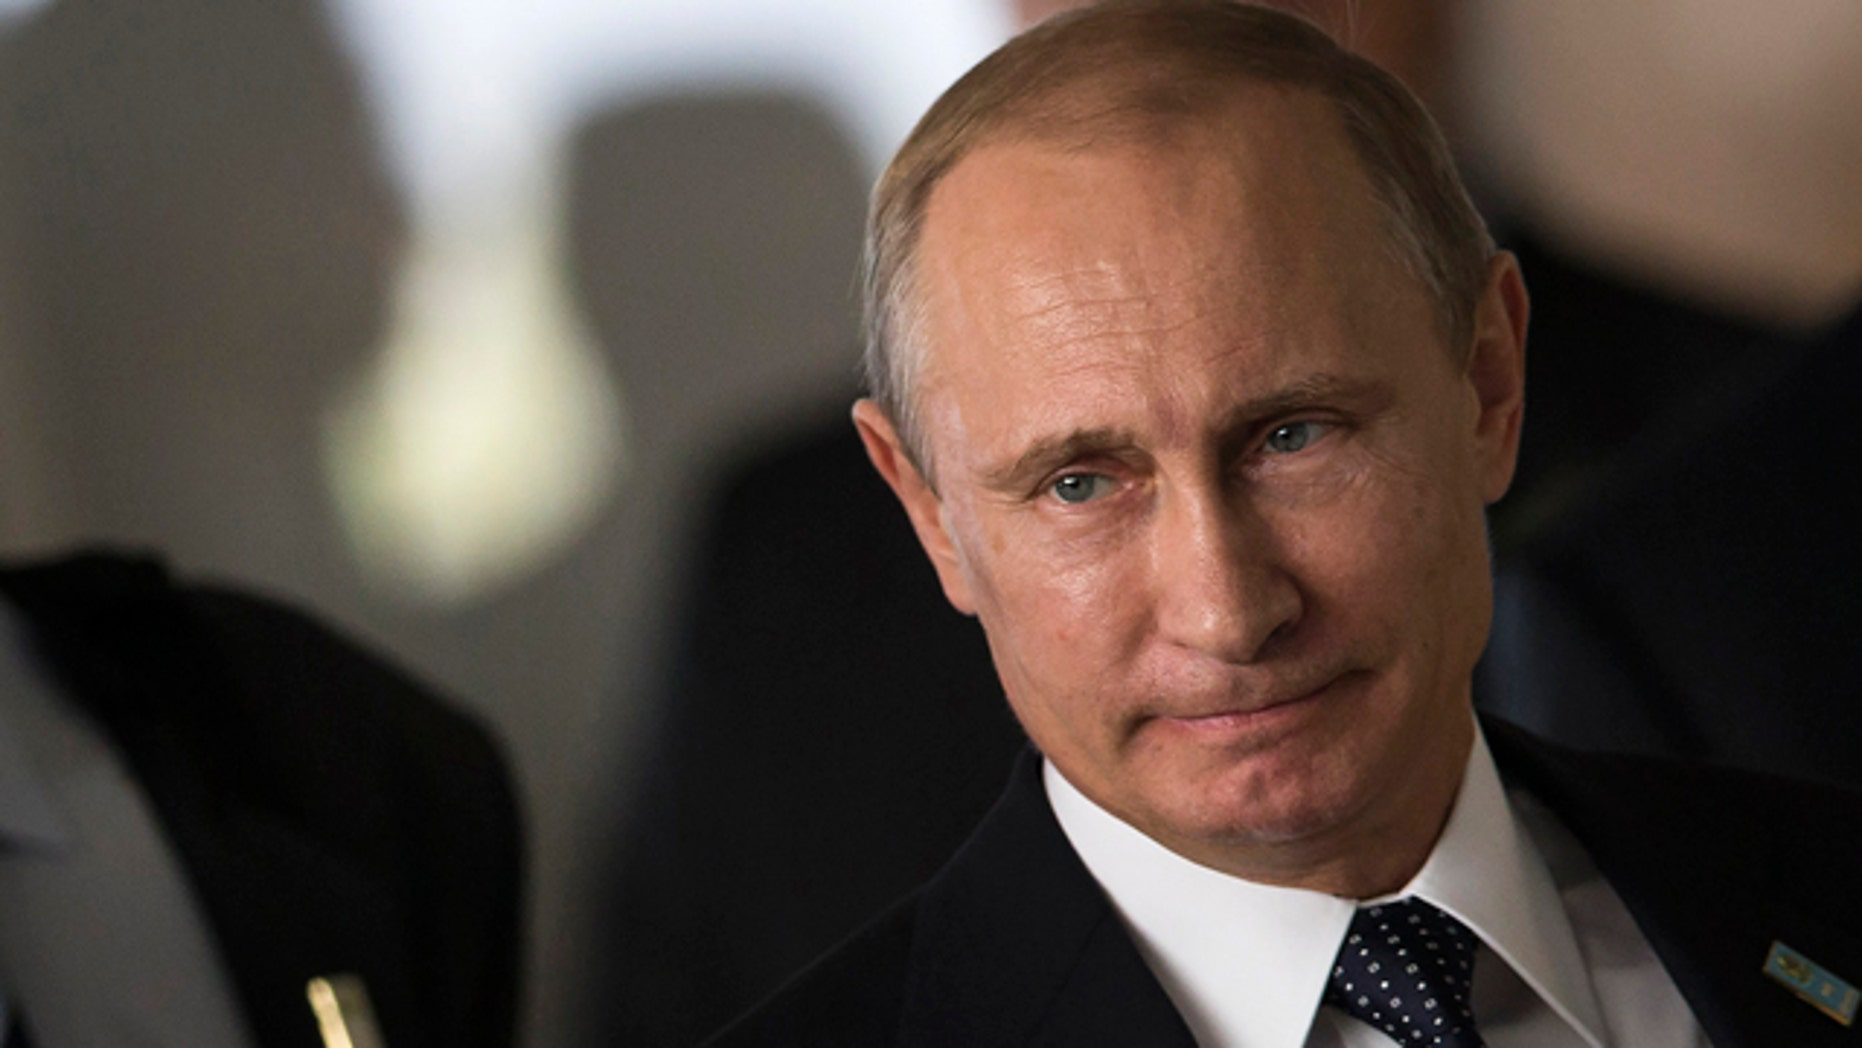 July 16, 2014: Russia's President Vladimir Putin arrives for an official group photo during the BRICS summit at the Itamaraty palace, in Brasilia, Brazil. (AP Photo/Felipe Dana, File )